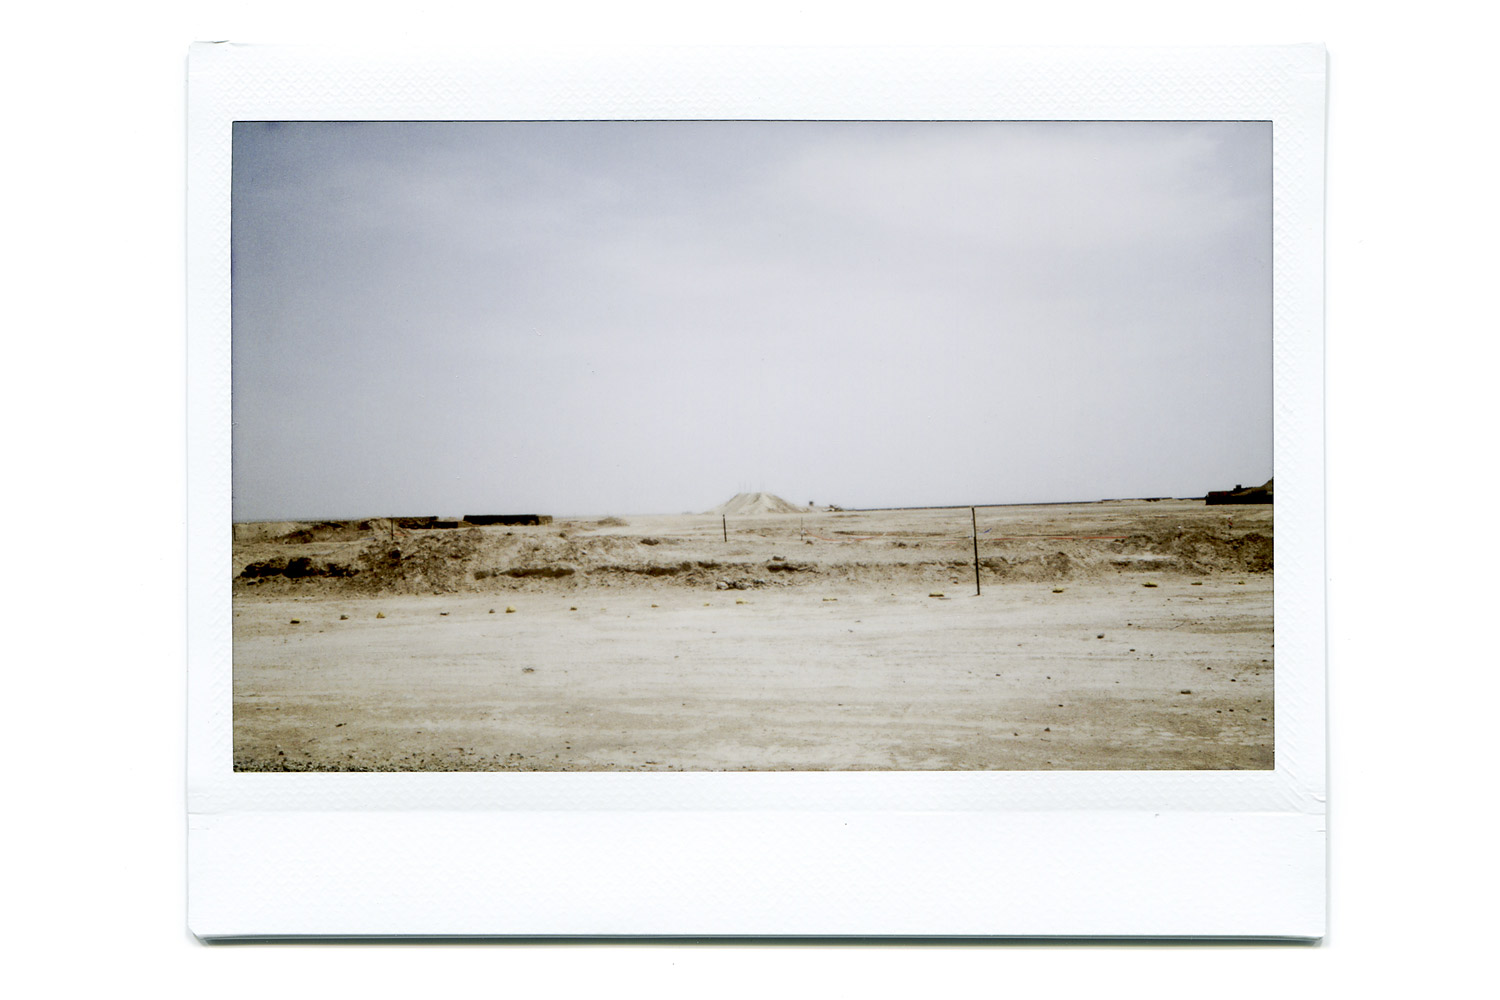 A view of the military base Camp Bastion.  A shot to show the vastness and aridness in parts of Bastion.